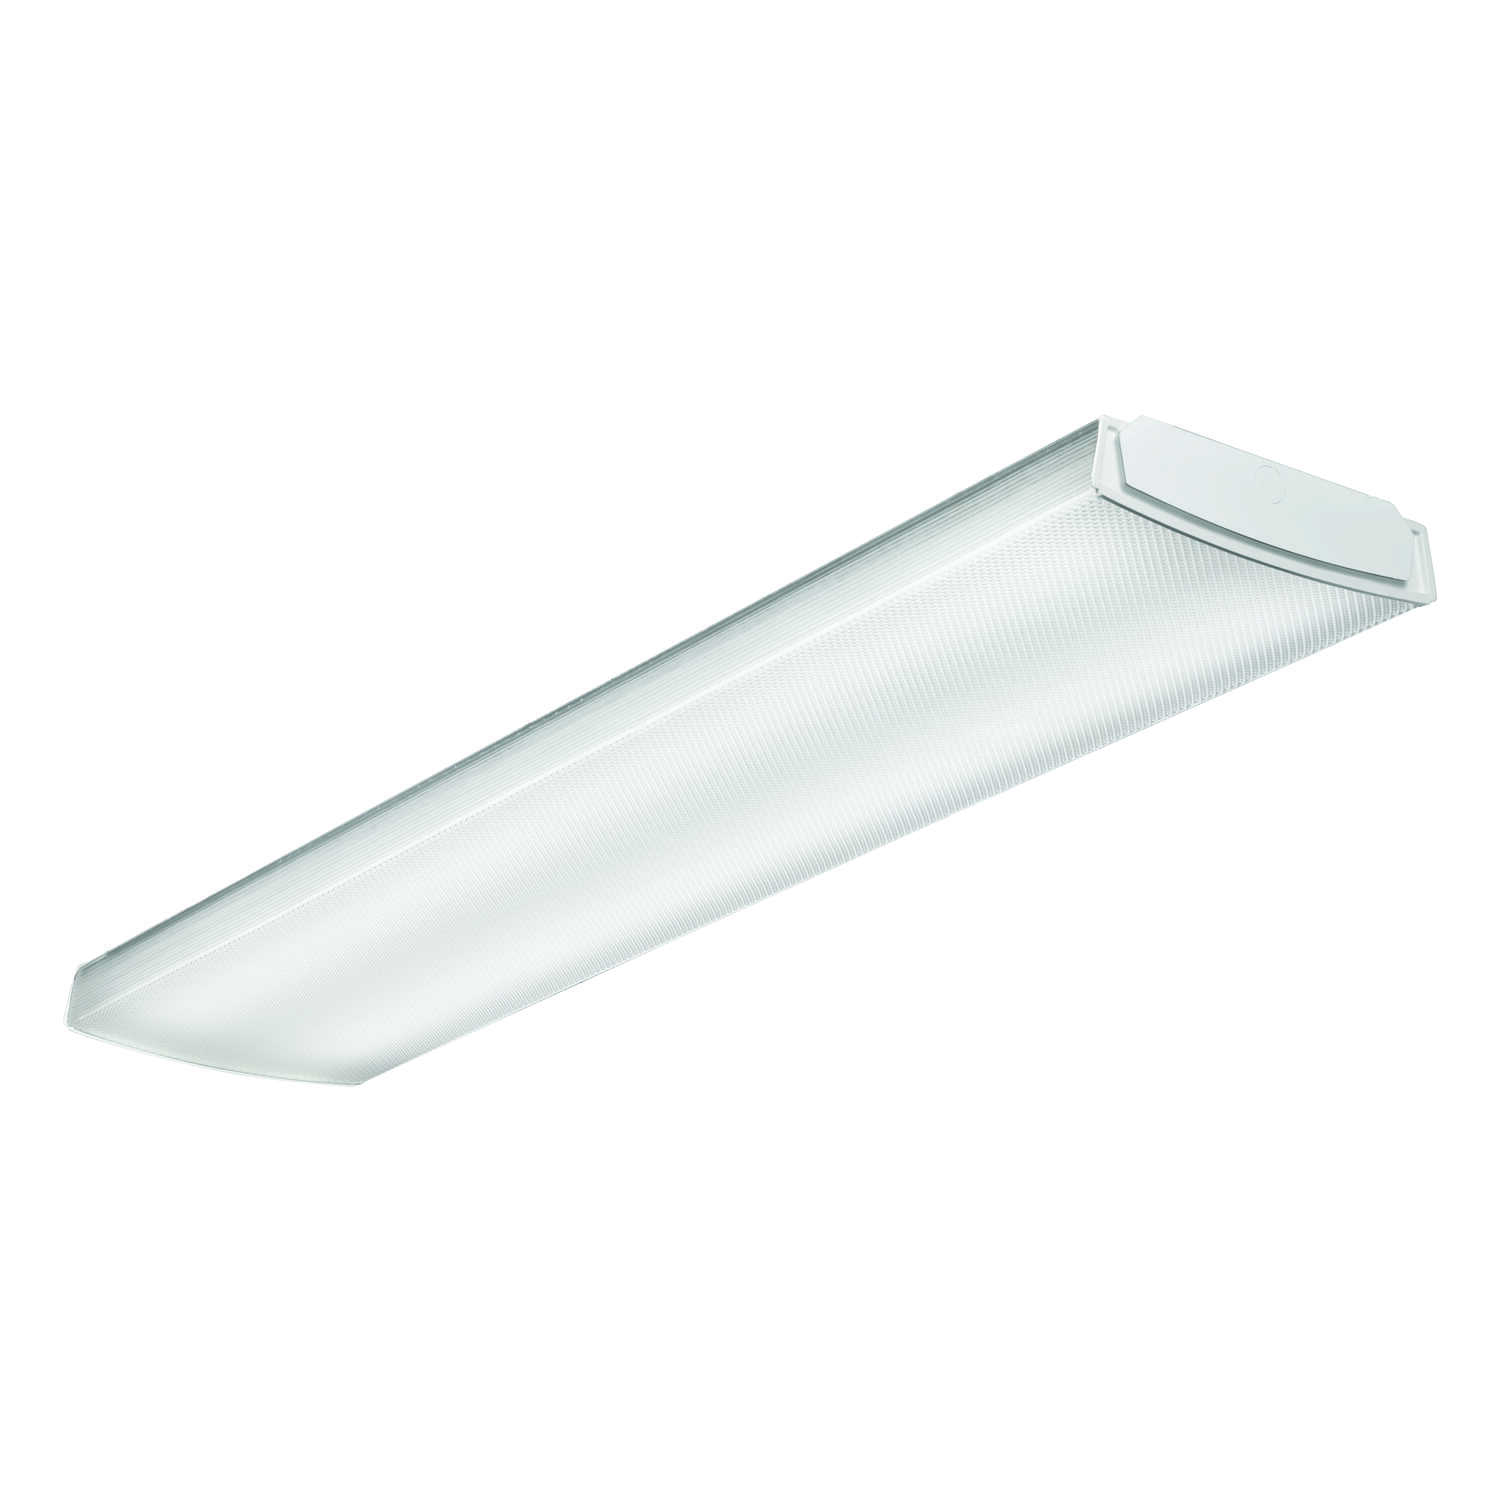 Lithonia Lighting  32 watts 48 in. 0 lights LED Wraparound Light Fixture